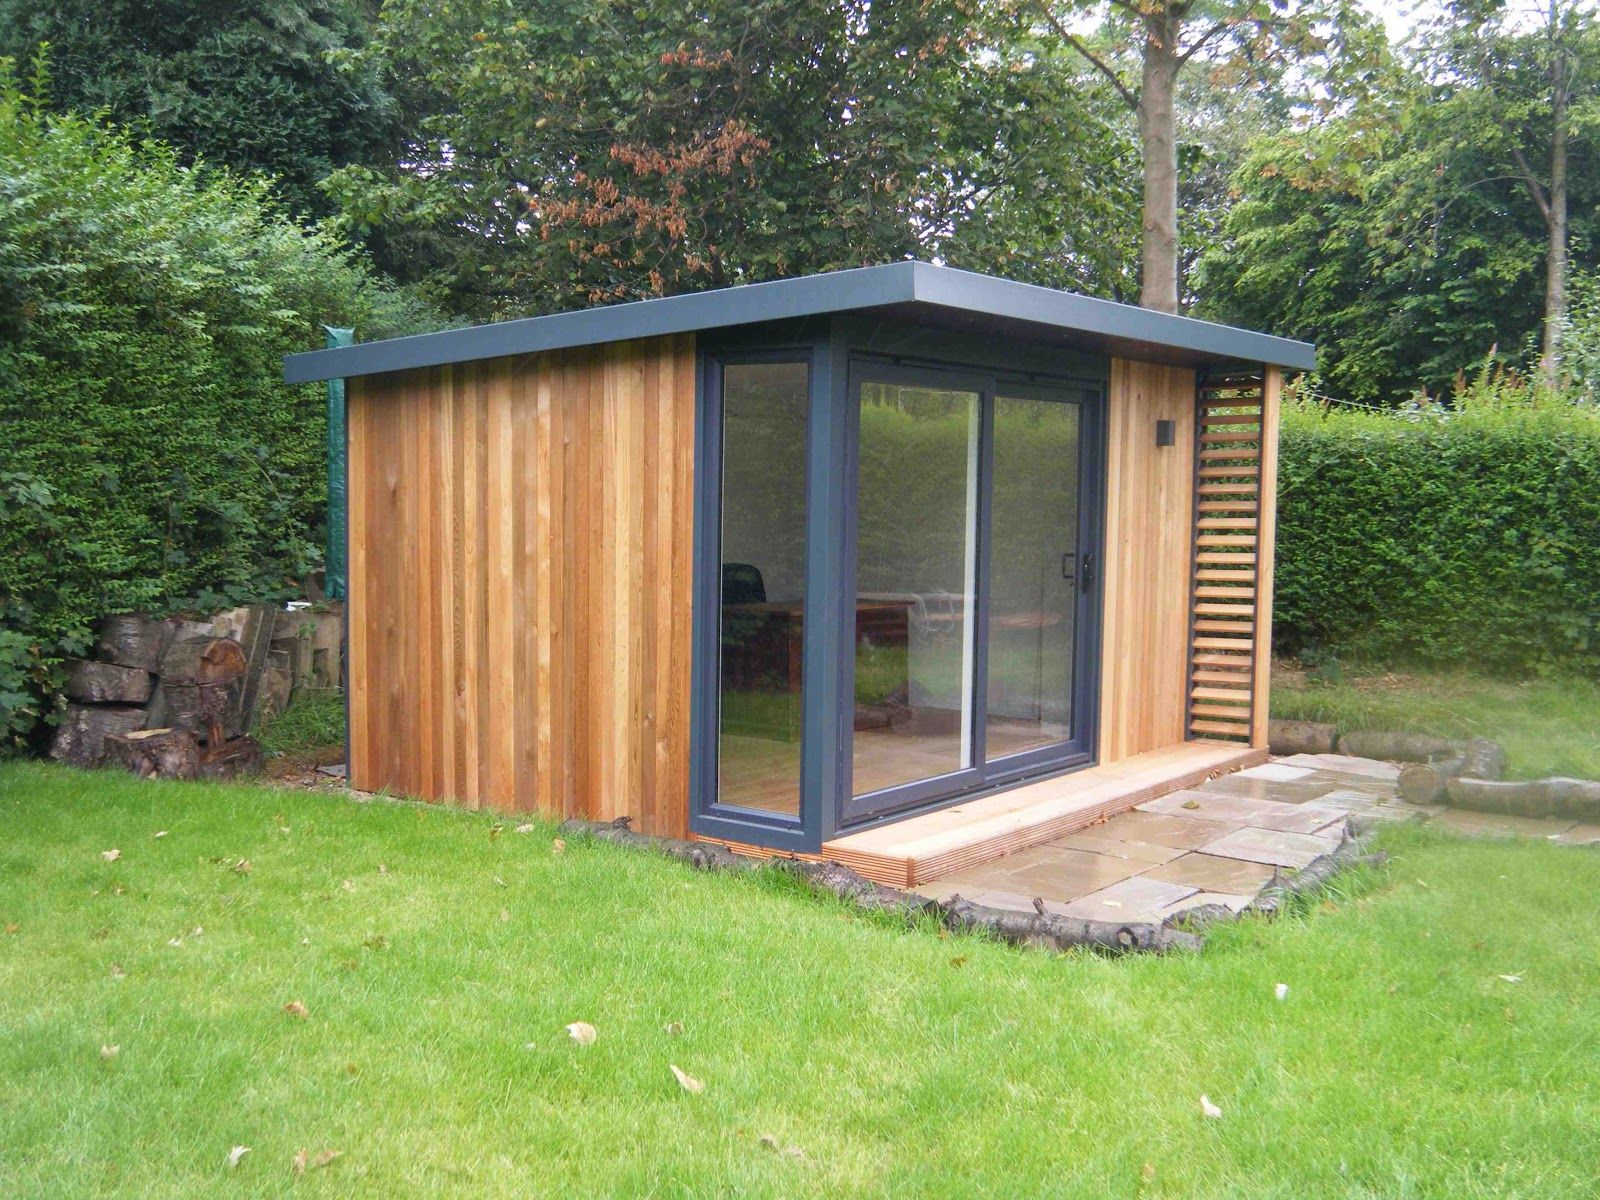 Attractive Shed Office Designs George Clarkes Amazing Spaces Curved Wooden Garden  Office 2017 And Shed Designs Images